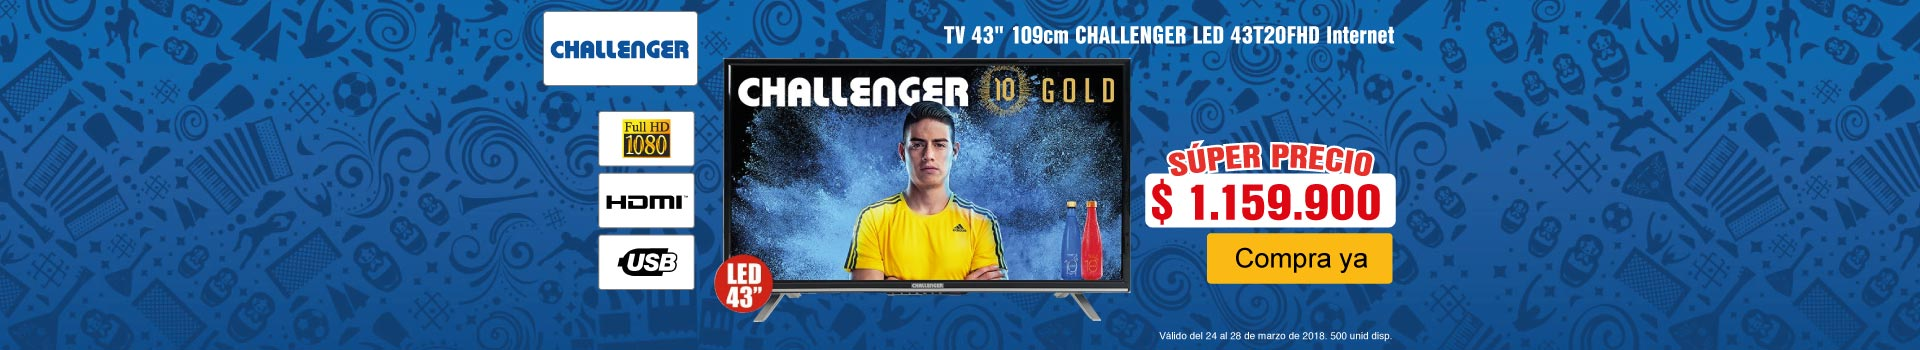 CAT 3 AK-tv-Challenger43T20-prod-Marzo 24-27